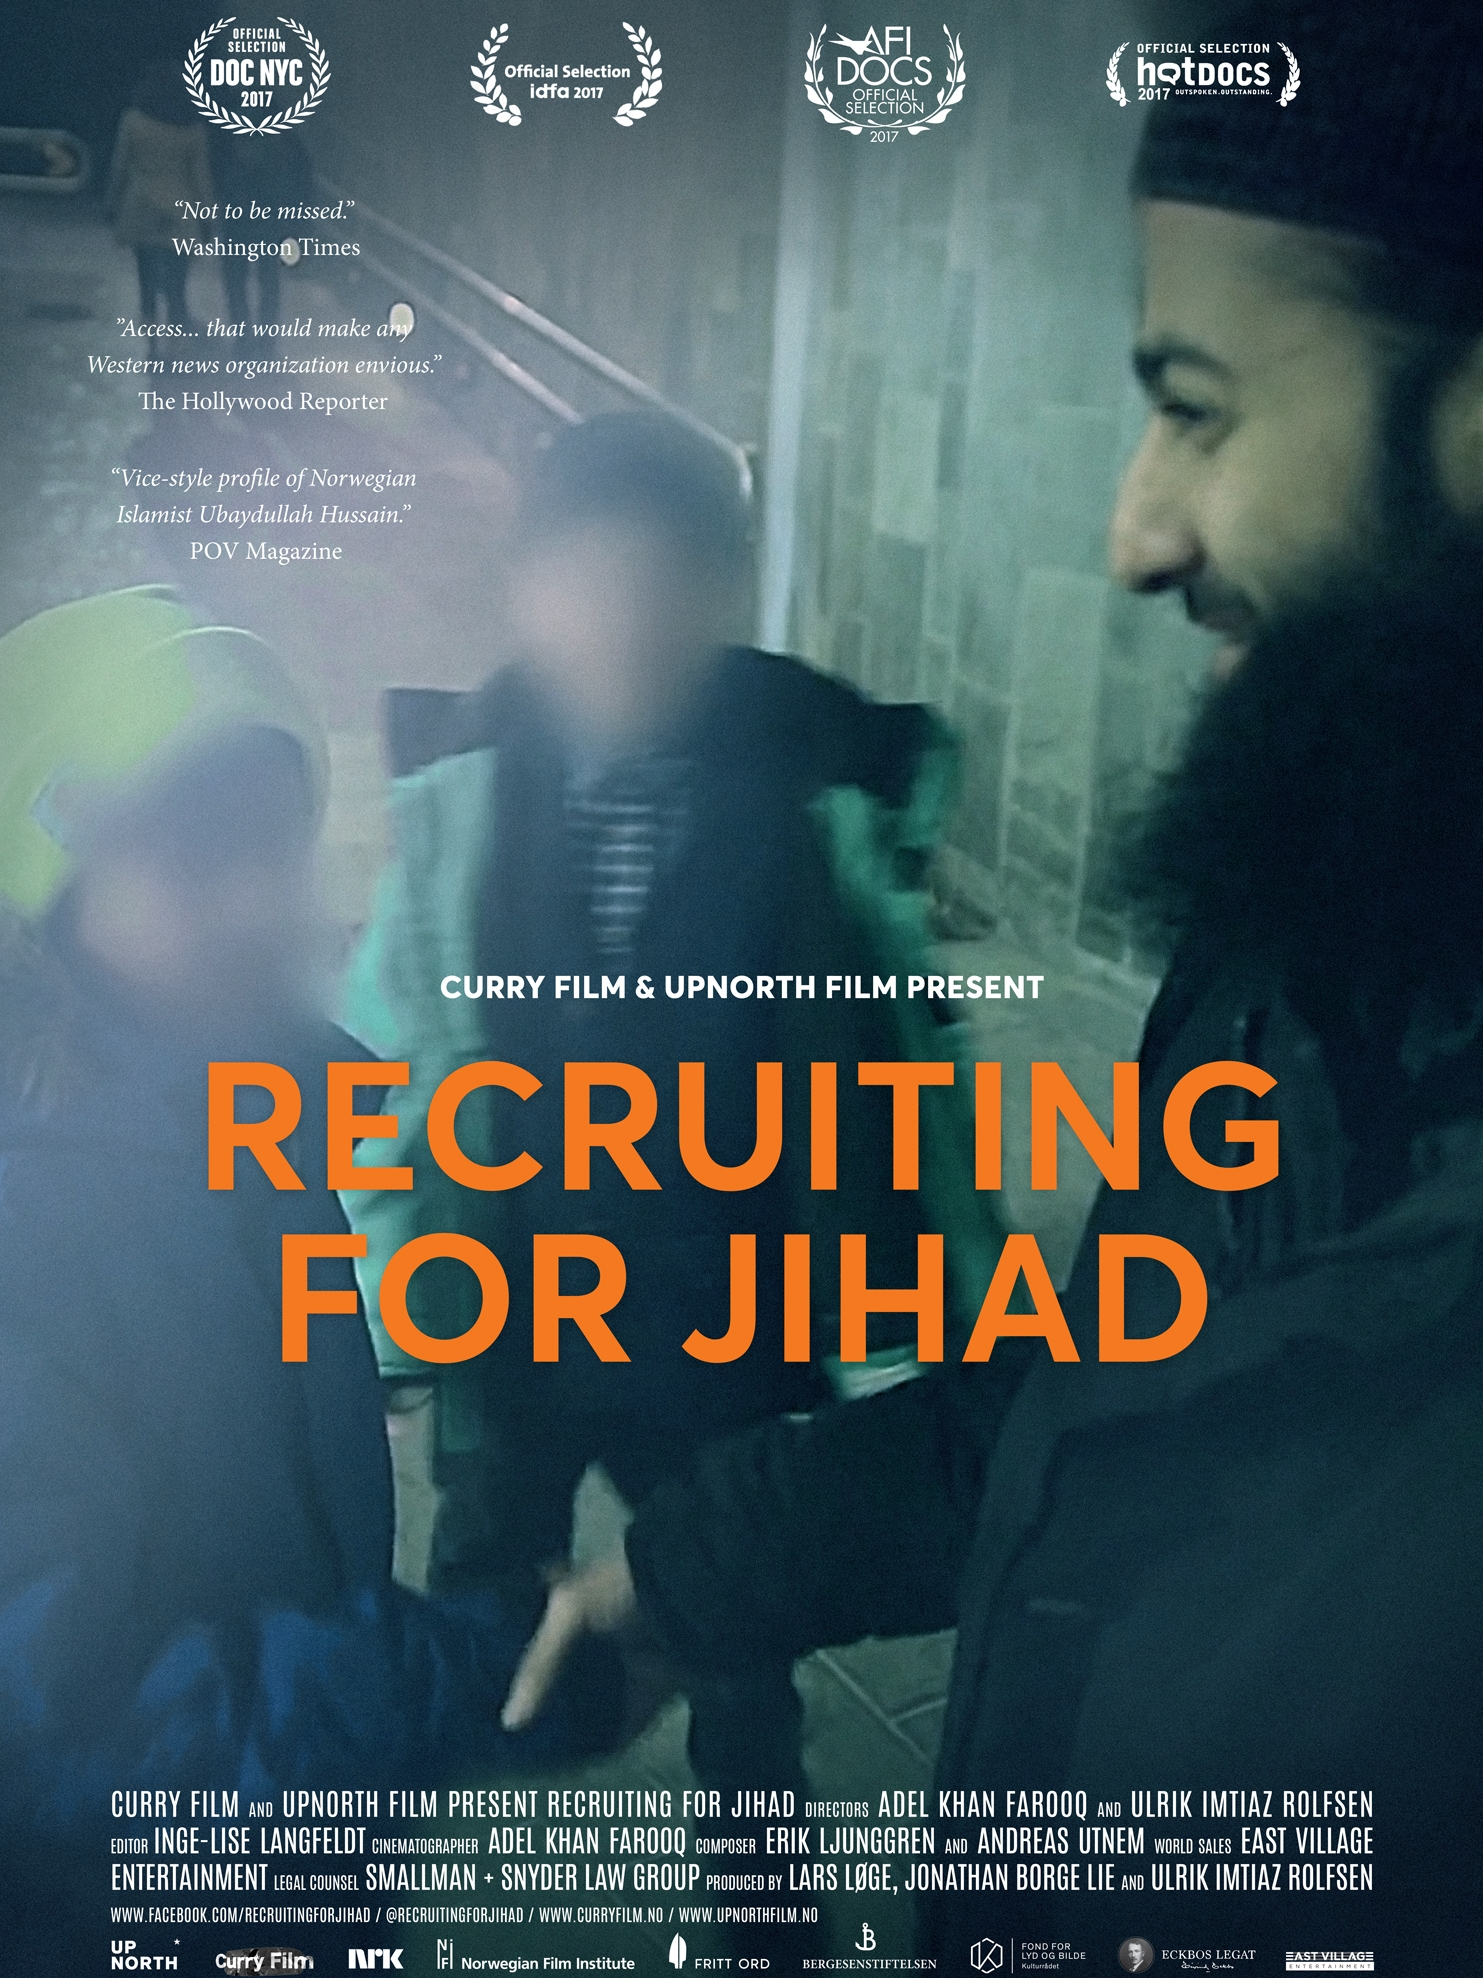 Recruiting for Jihad - 2017, Norway, 67 min + 79 min International version, in Norwegian + EnglishFor three years a well-known Norwegian extremist gives unique access to his everyday life encouraging jihadists in Europe until he is arrested for supporting terrorism by recruiting for ISIS. This extremely timely film highlights the tension between free societies and those who take advantage of their values while seeking to undermine them. Recruiting for Jihad is especially resonant and newsworthy given the deadly incidents in Paris, Stockholm, London, Berlin, Nice, Brussels, San Bernardino and elsewhere.